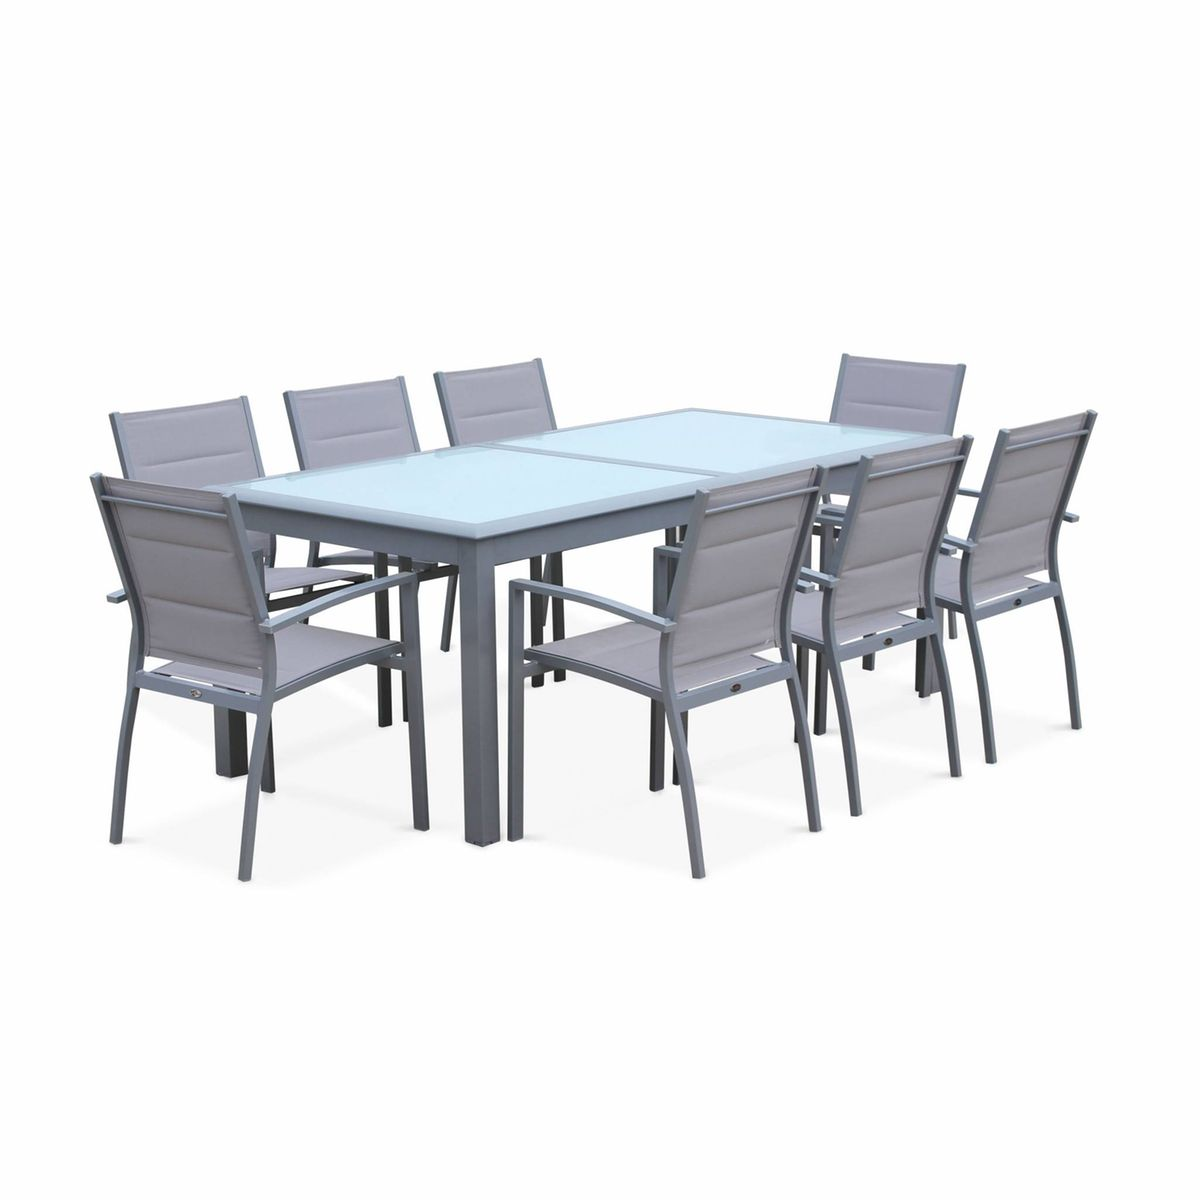 Salon De Jardin Table Extensible - Philadelphie - Table En ...